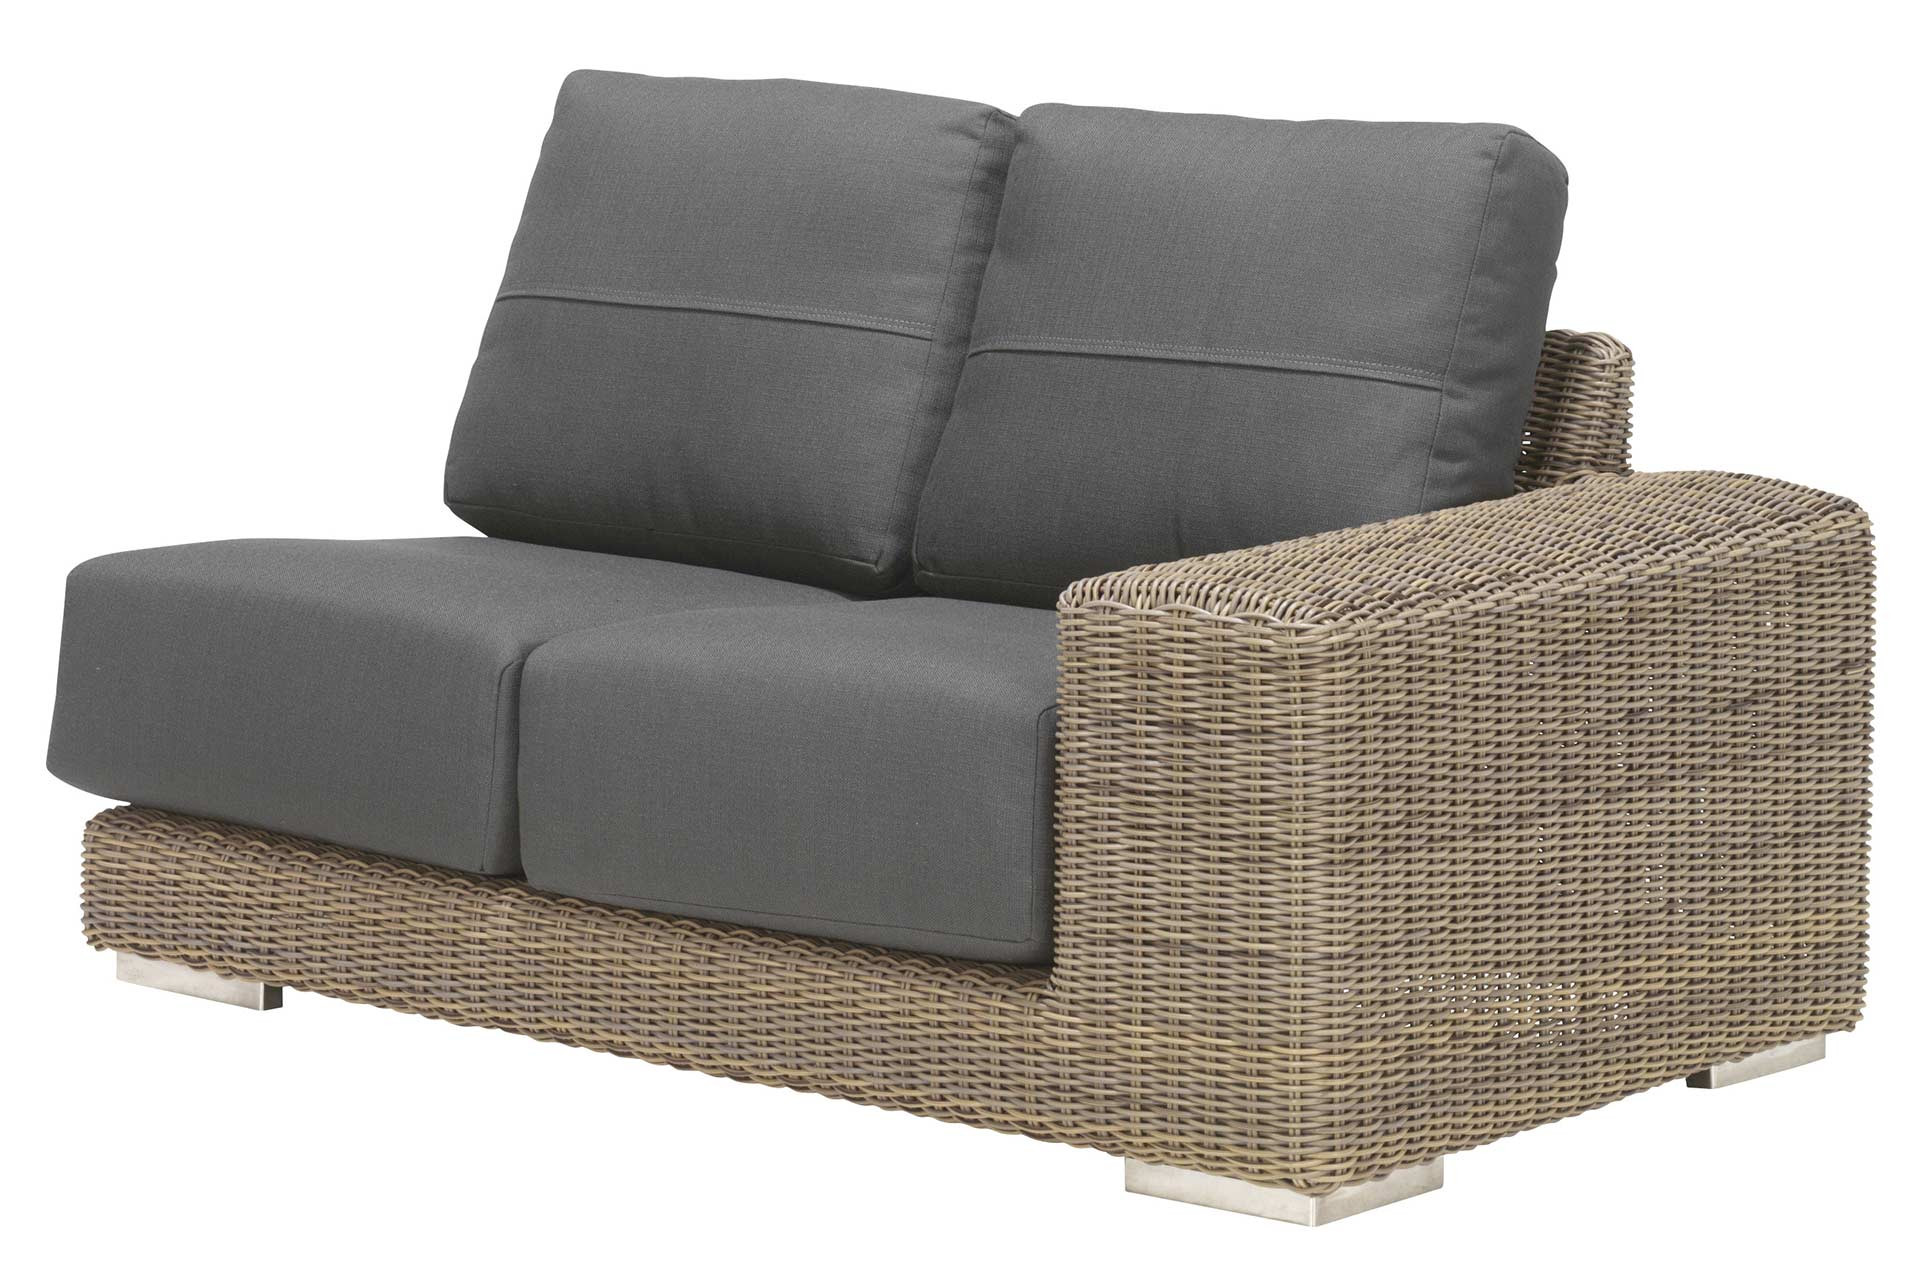 Kingston modular 2 seater left with 4 cushions